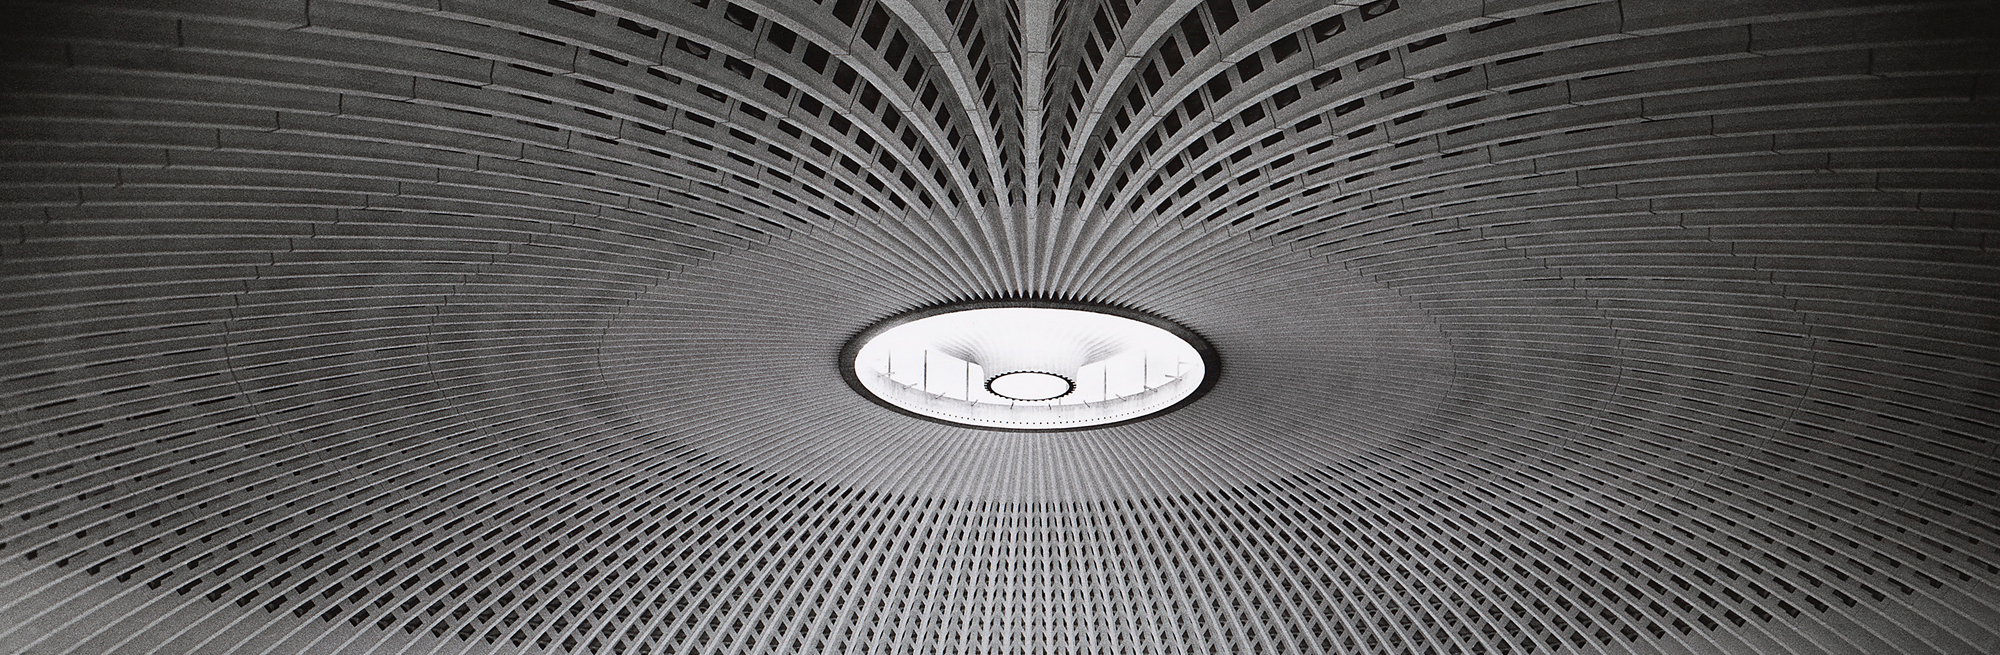 a biography of pier luigi nervi Italian architect pier luigi nervi was known for his architecture innovations using concrete, his favorite material, he built stadiums, factories and warehouses he was an engineer, designer, constructor, inventor, teacher and theorist.